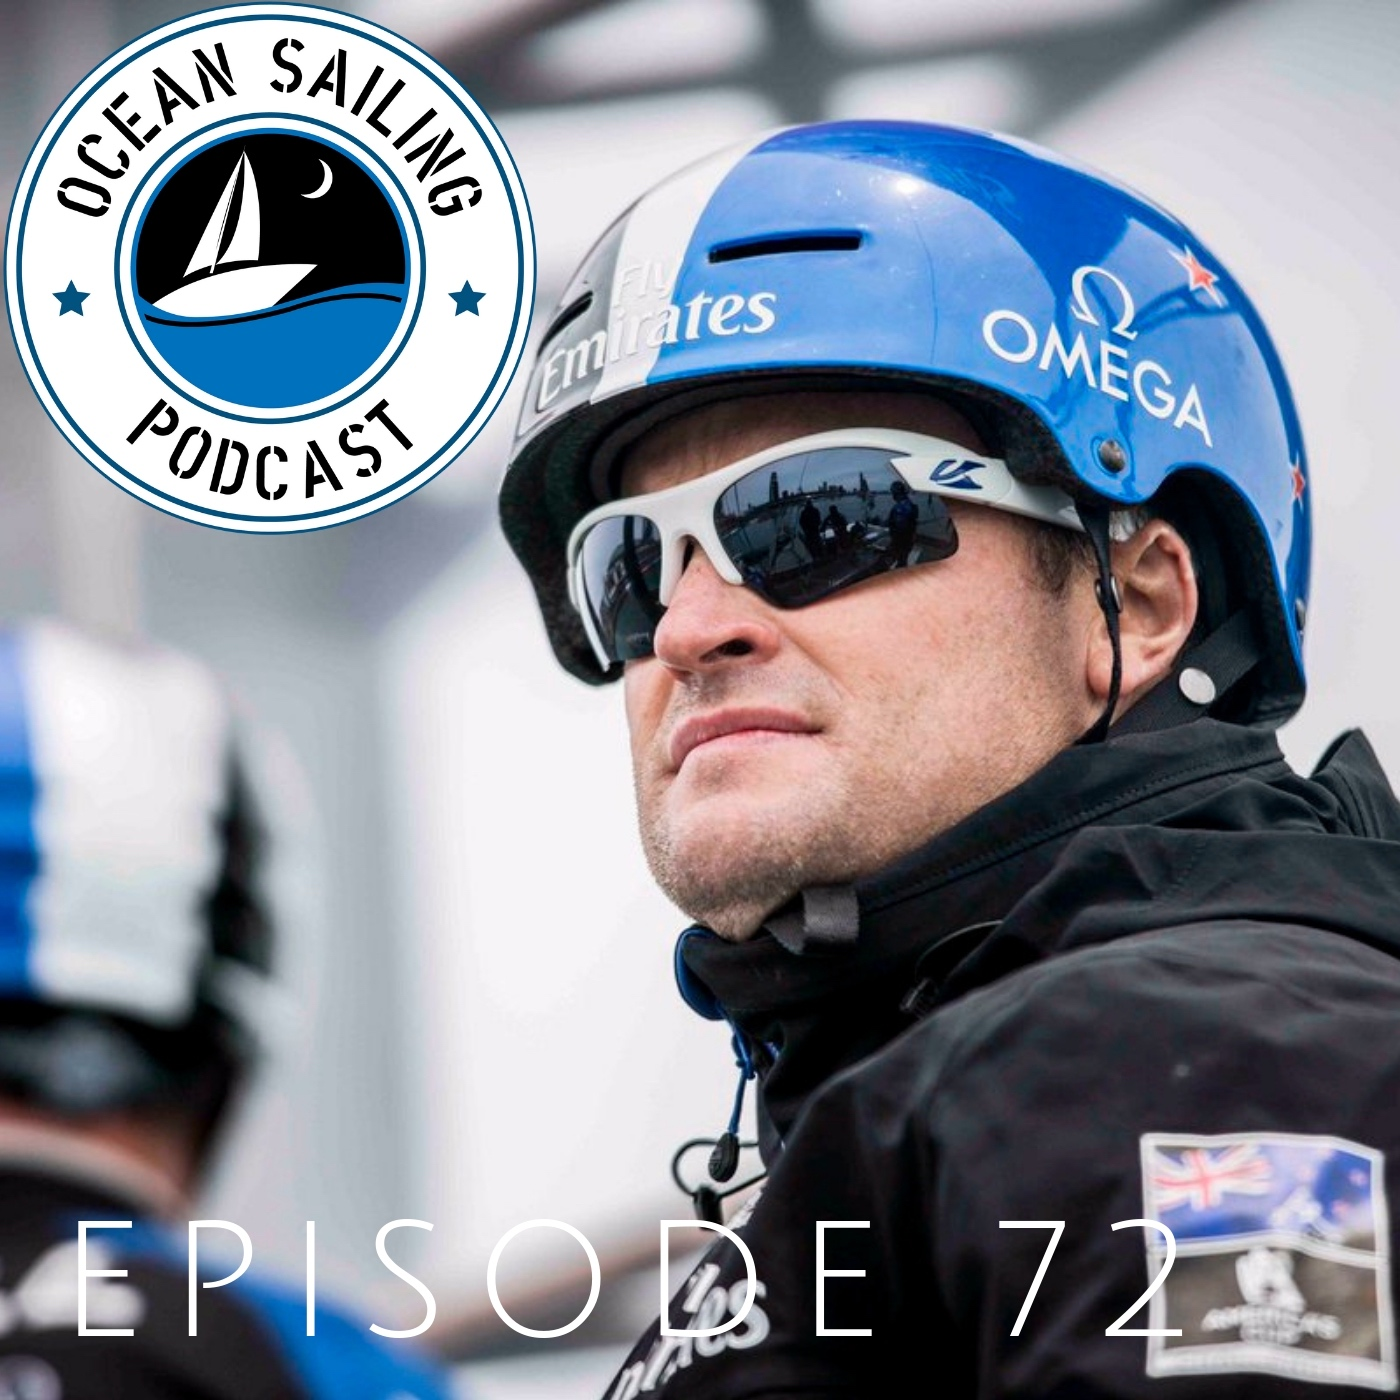 Podcast episodes — Ocean Sailing Podcast